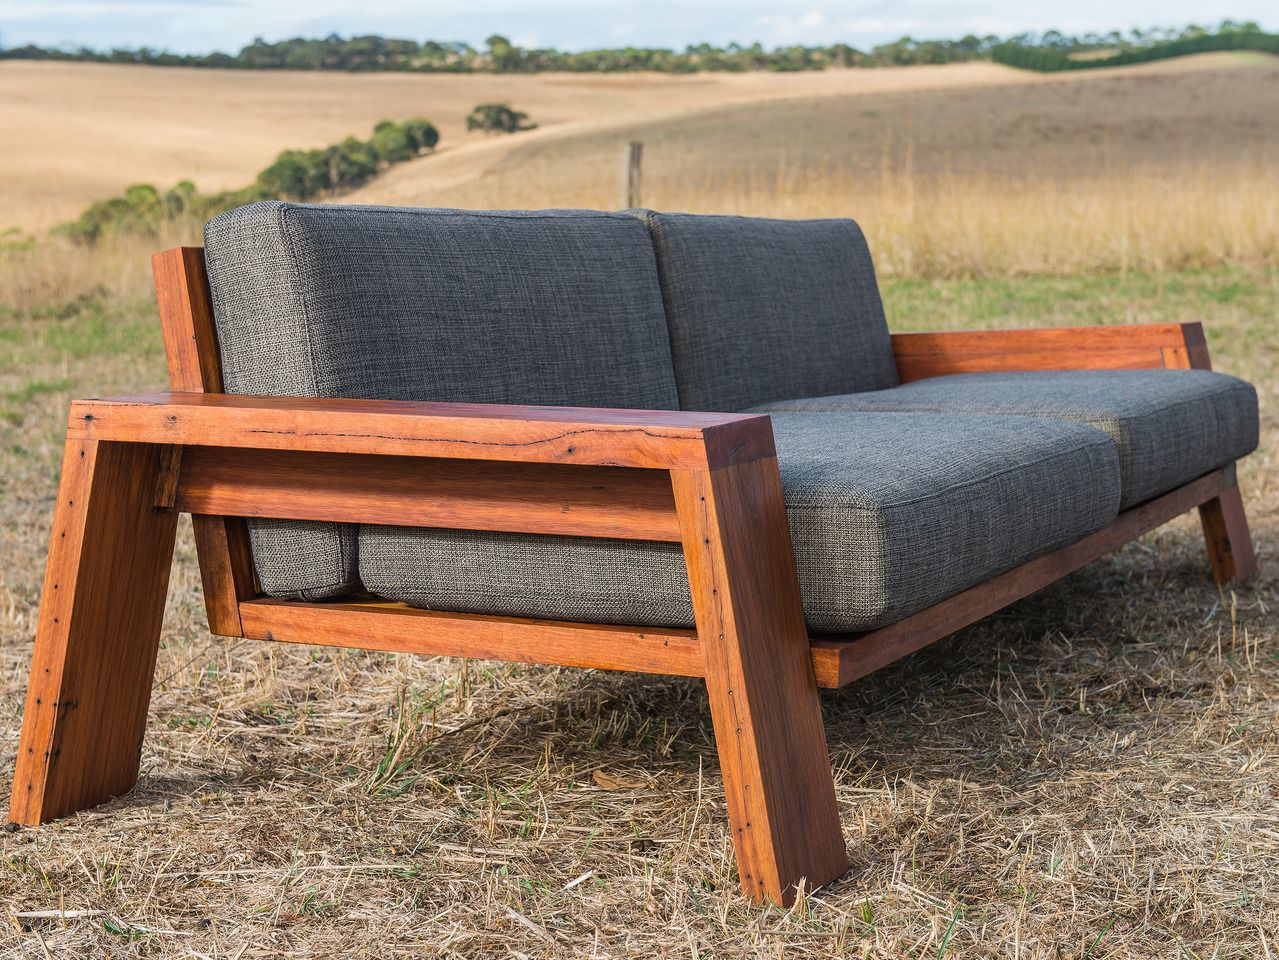 High Quality Handkrafted   Queenscliff Exposed Timber Frame Couch Made By Luke Collins.  Upcycled FurnitureIndustrial ...